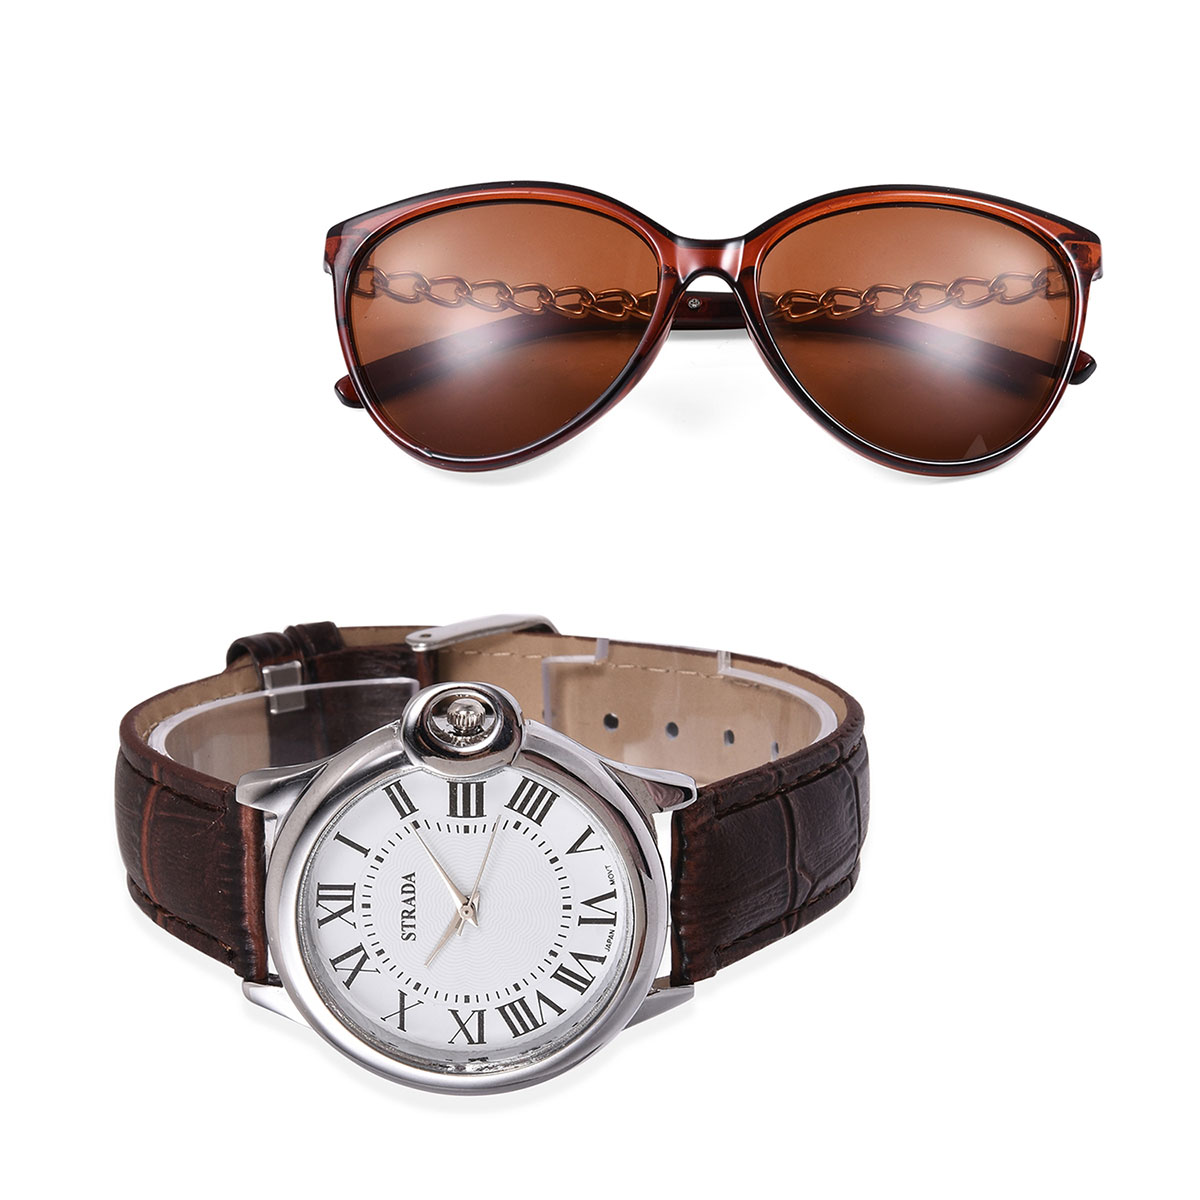 STRADA Japanese Movement Water Resistant Stainless Steel Back Roman Numberal Watch with Brown Faux Leather Band and Matching UV400 Women Wayfarer Style Sunglasses with Linked Temple